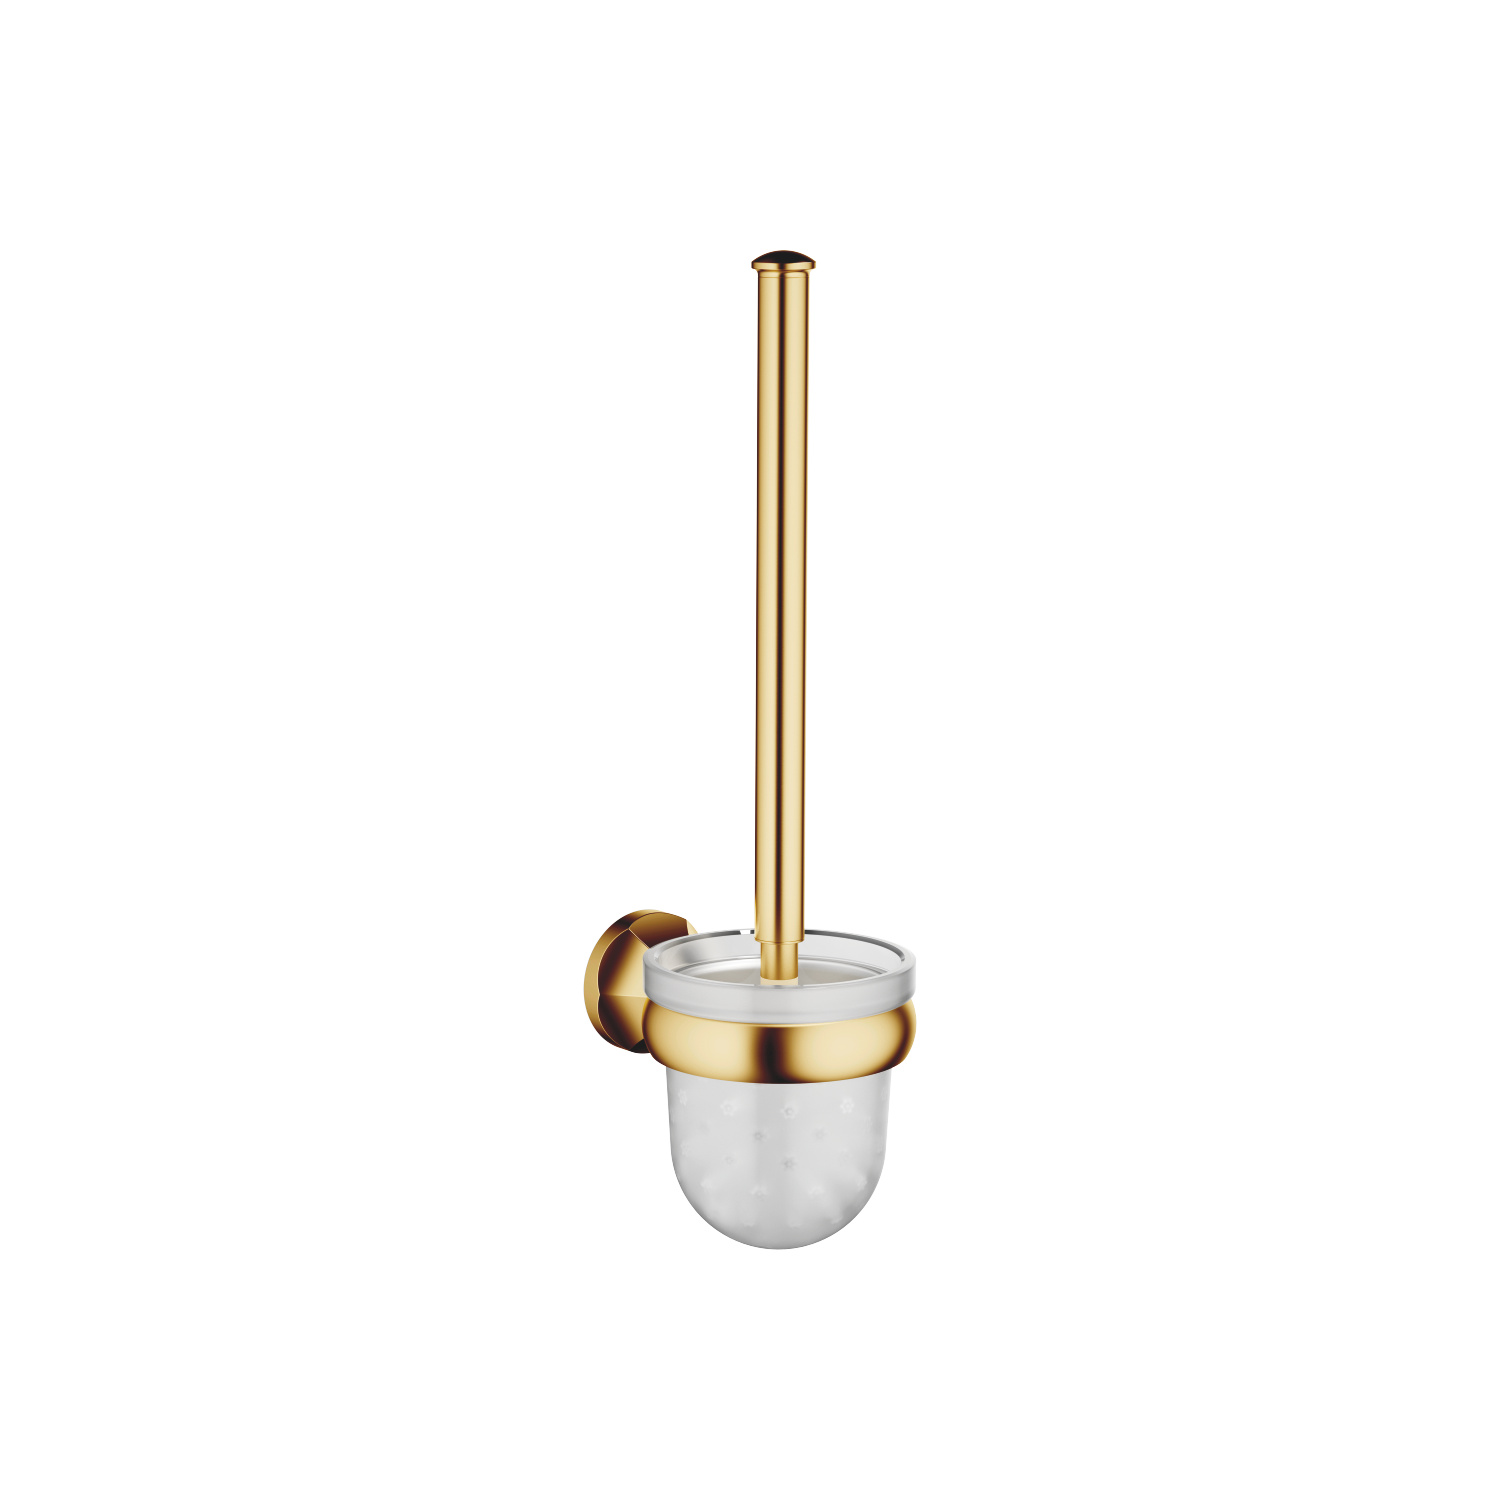 Toilet brush set wall model - brushed Durabrass - 83 900 361-28